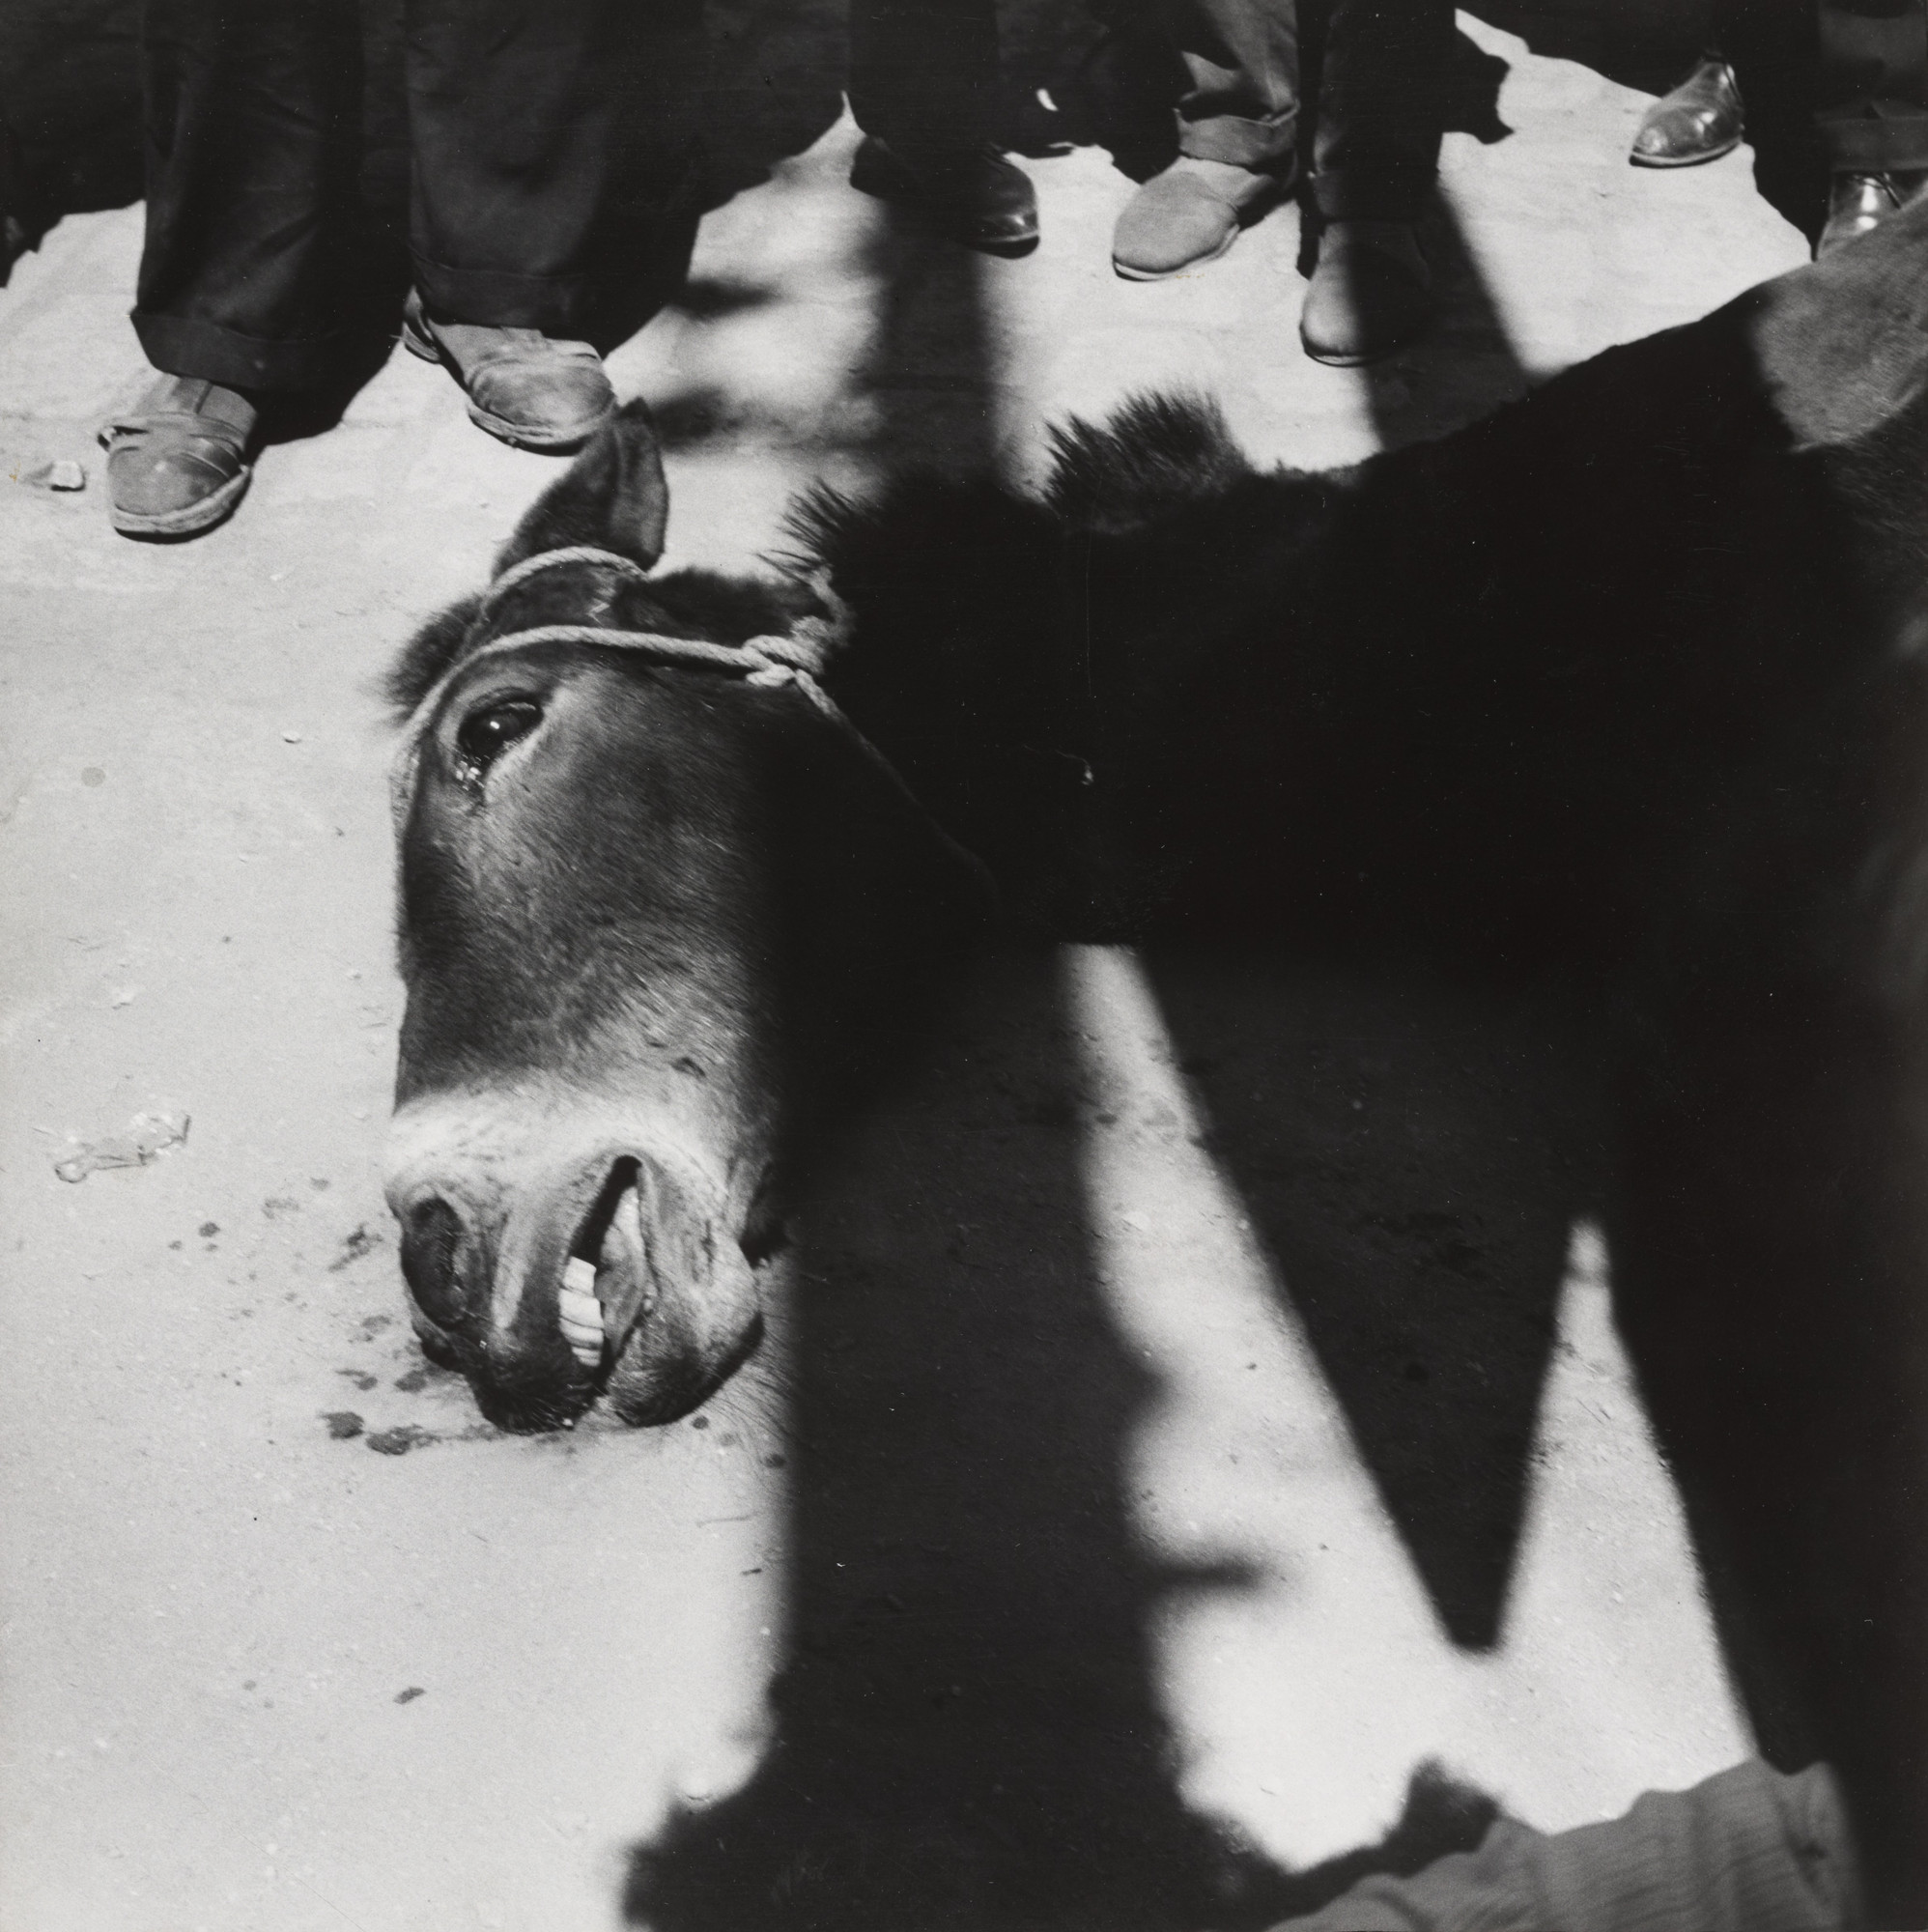 Claudia Andujar. Dying Donkey at the Seville Fair. 1959